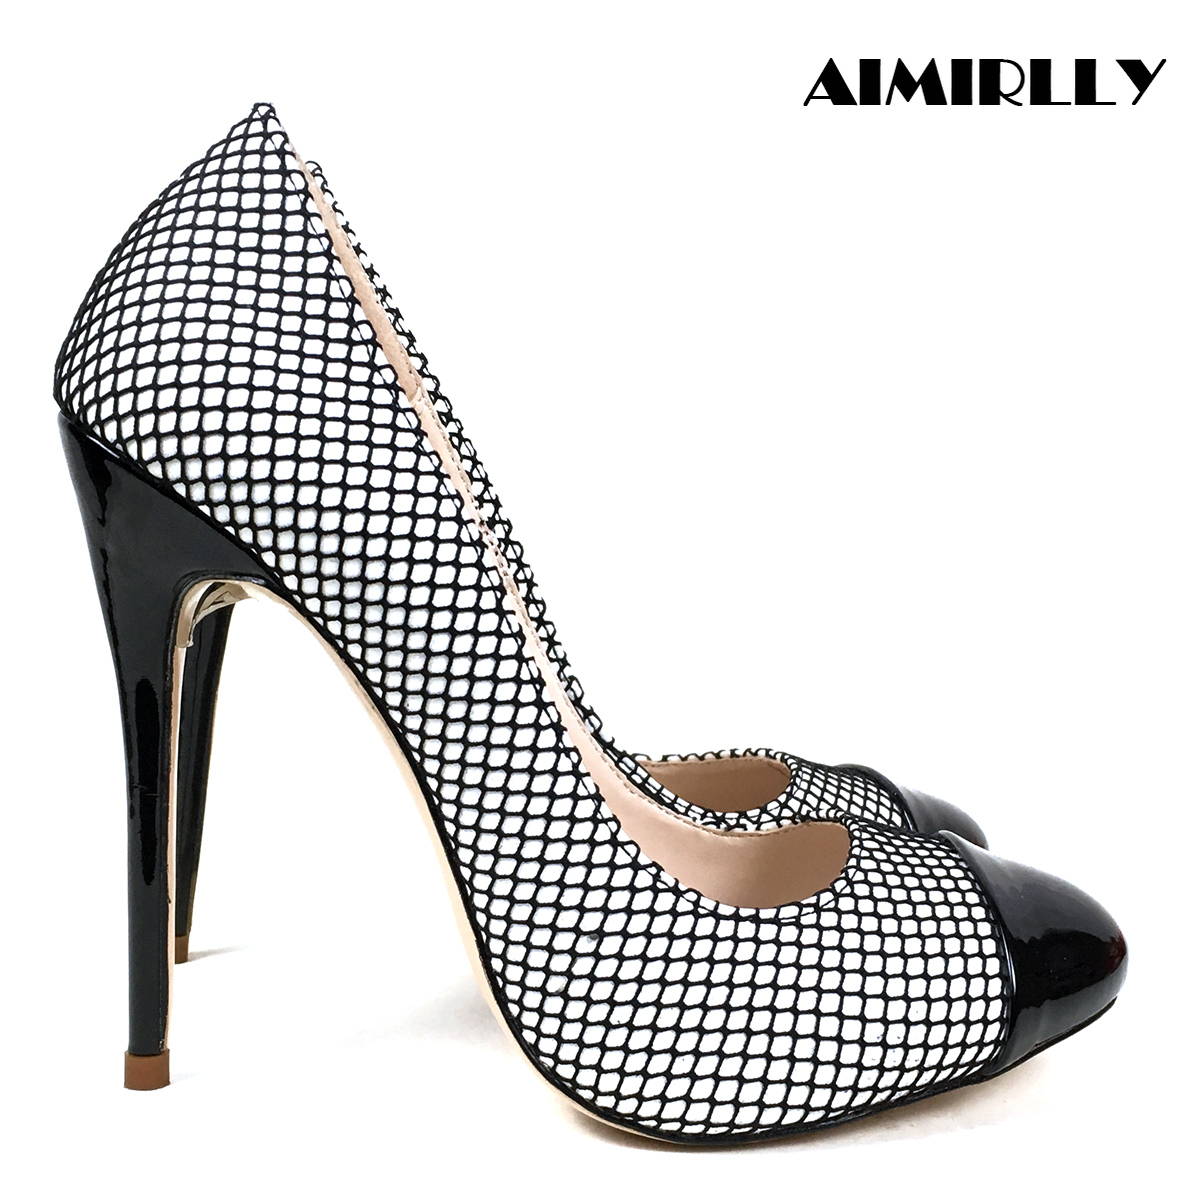 Aimirrly Women Shoes High Heels Pumps Round Toe Formal Evening Party Wedding Dress Shoes Black Mesh Surface Sexy Heels Slip OnAimirrly Women Shoes High Heels Pumps Round Toe Formal Evening Party Wedding Dress Shoes Black Mesh Surface Sexy Heels Slip On